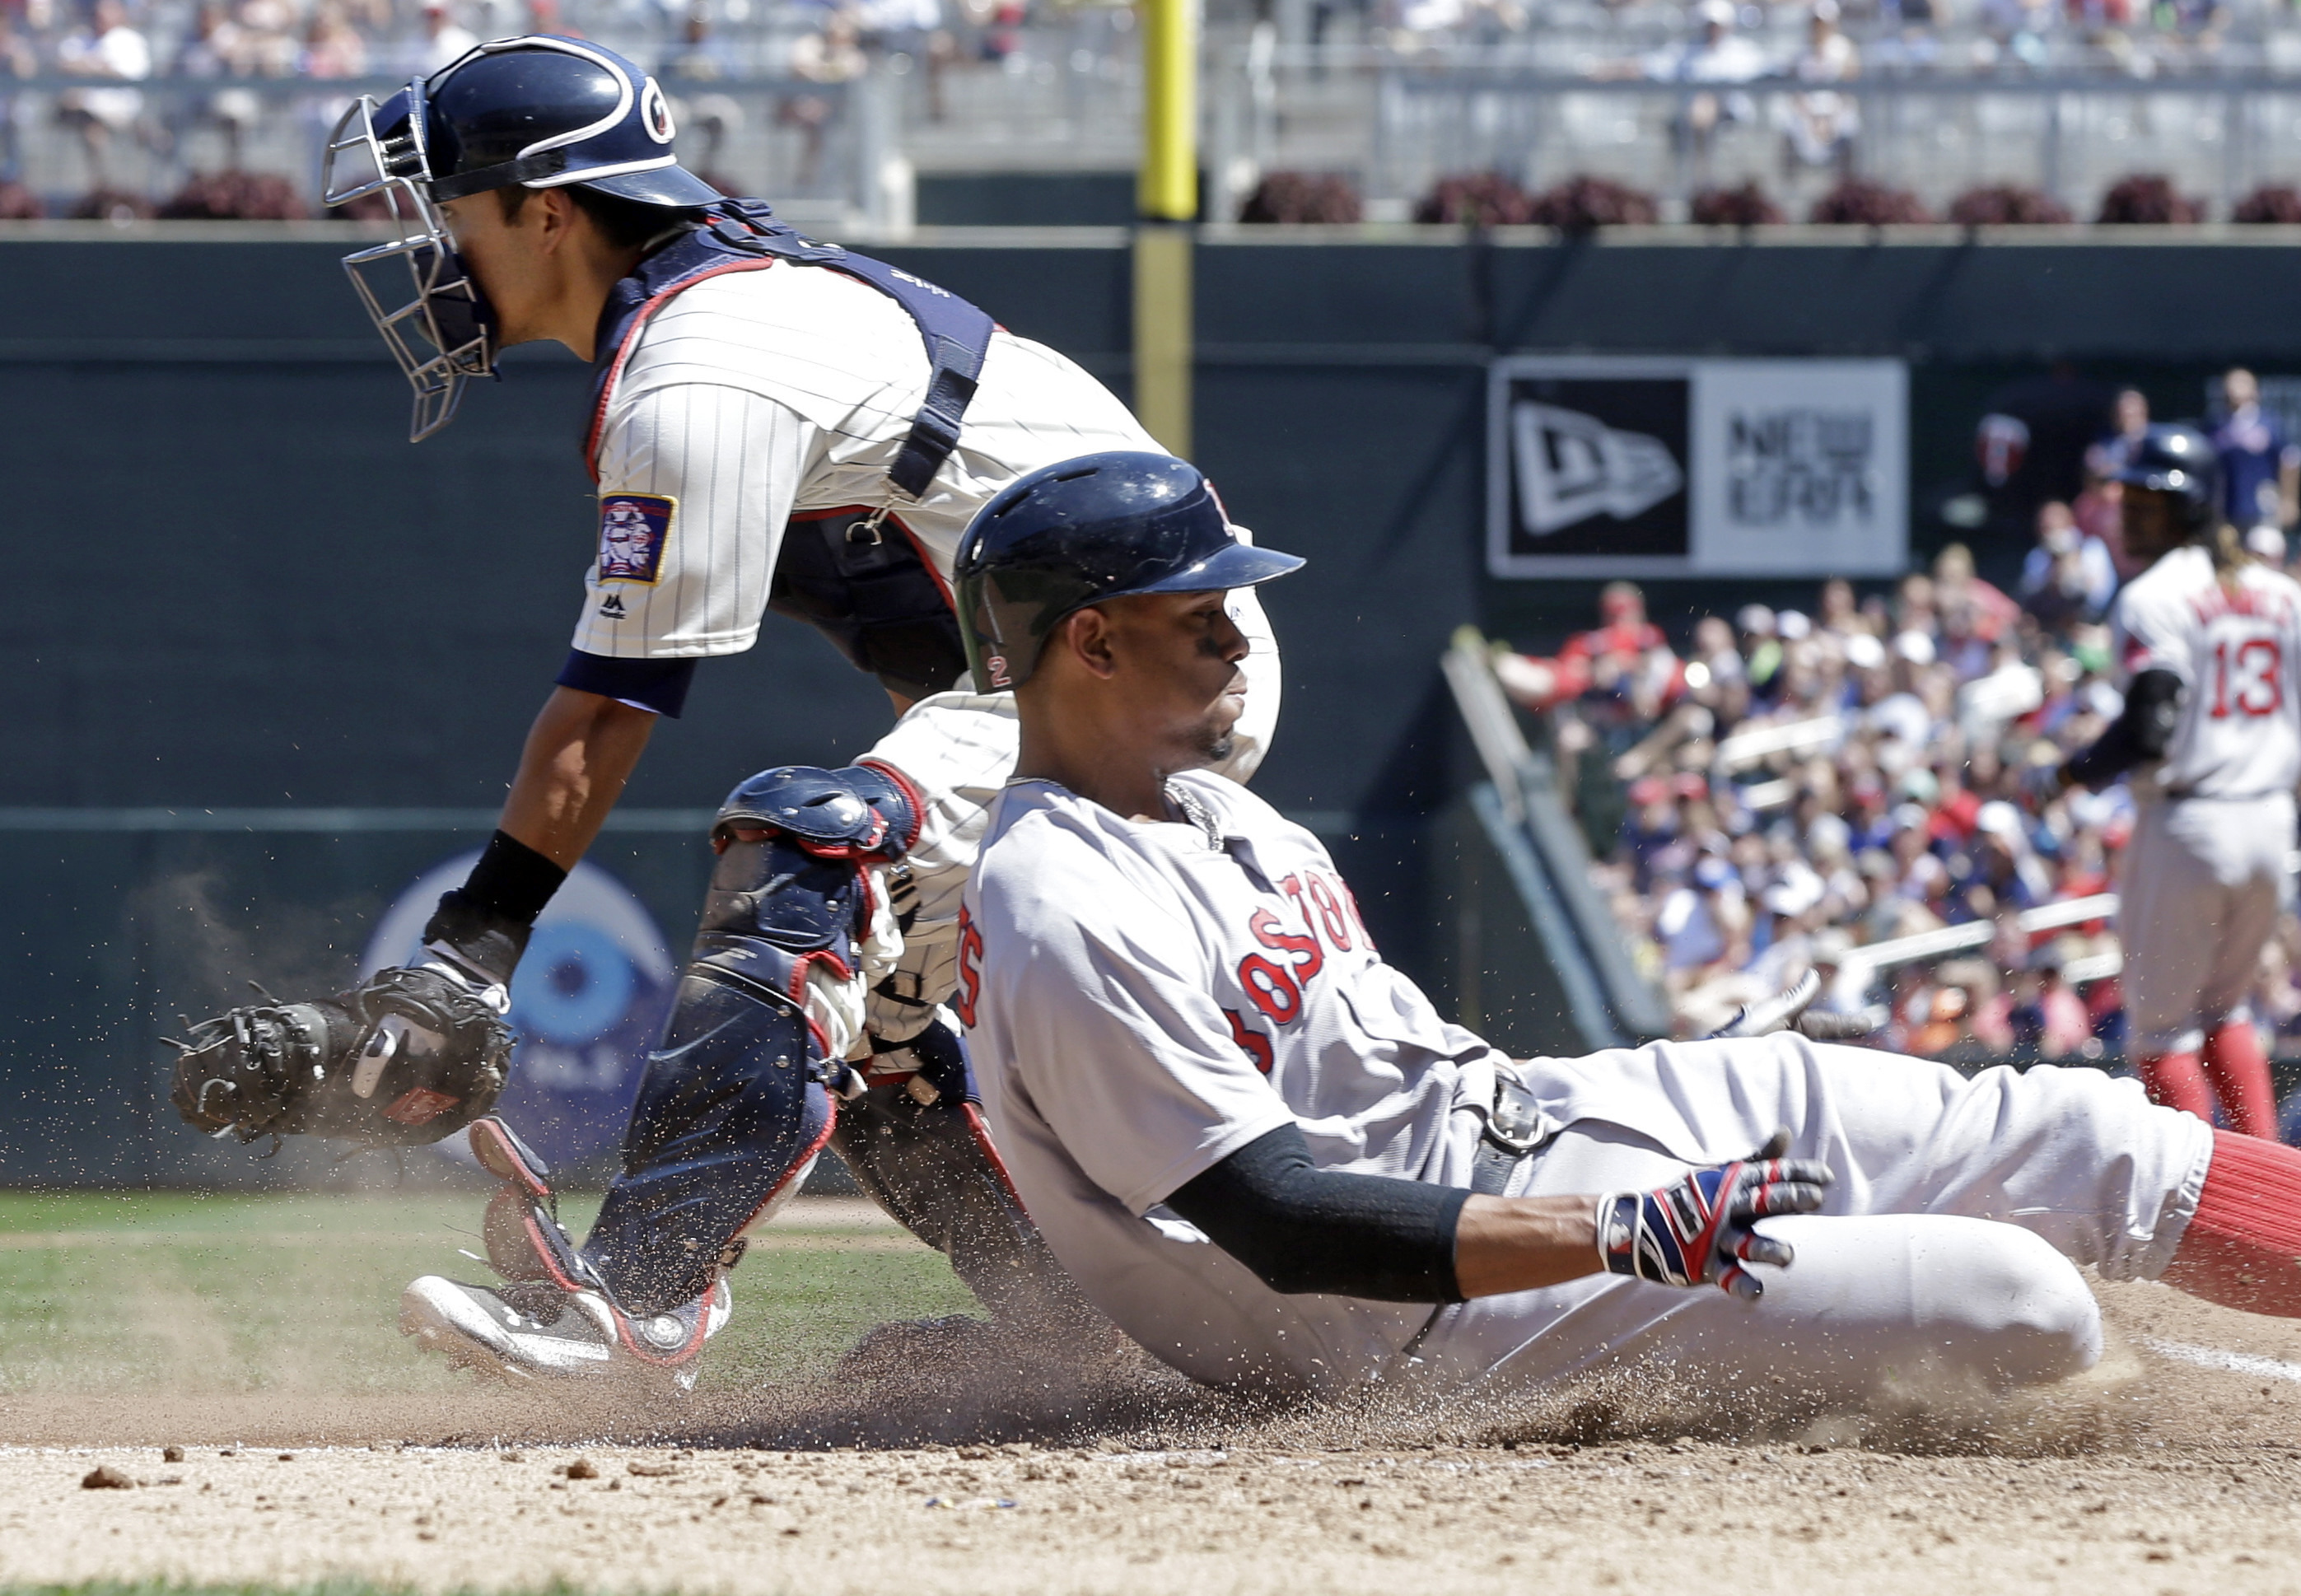 Boston Red Sox's Xander Bogaerts, right, scores from third on a go-ahead run past Minnesota Twins catcher Kurt Suzuki on a sacrifice fly by Hanley Ramirez in the sixth inning of a baseball game Saturday, June 11, 2016, in Minneapolis. (AP Photo/Jim Mone)